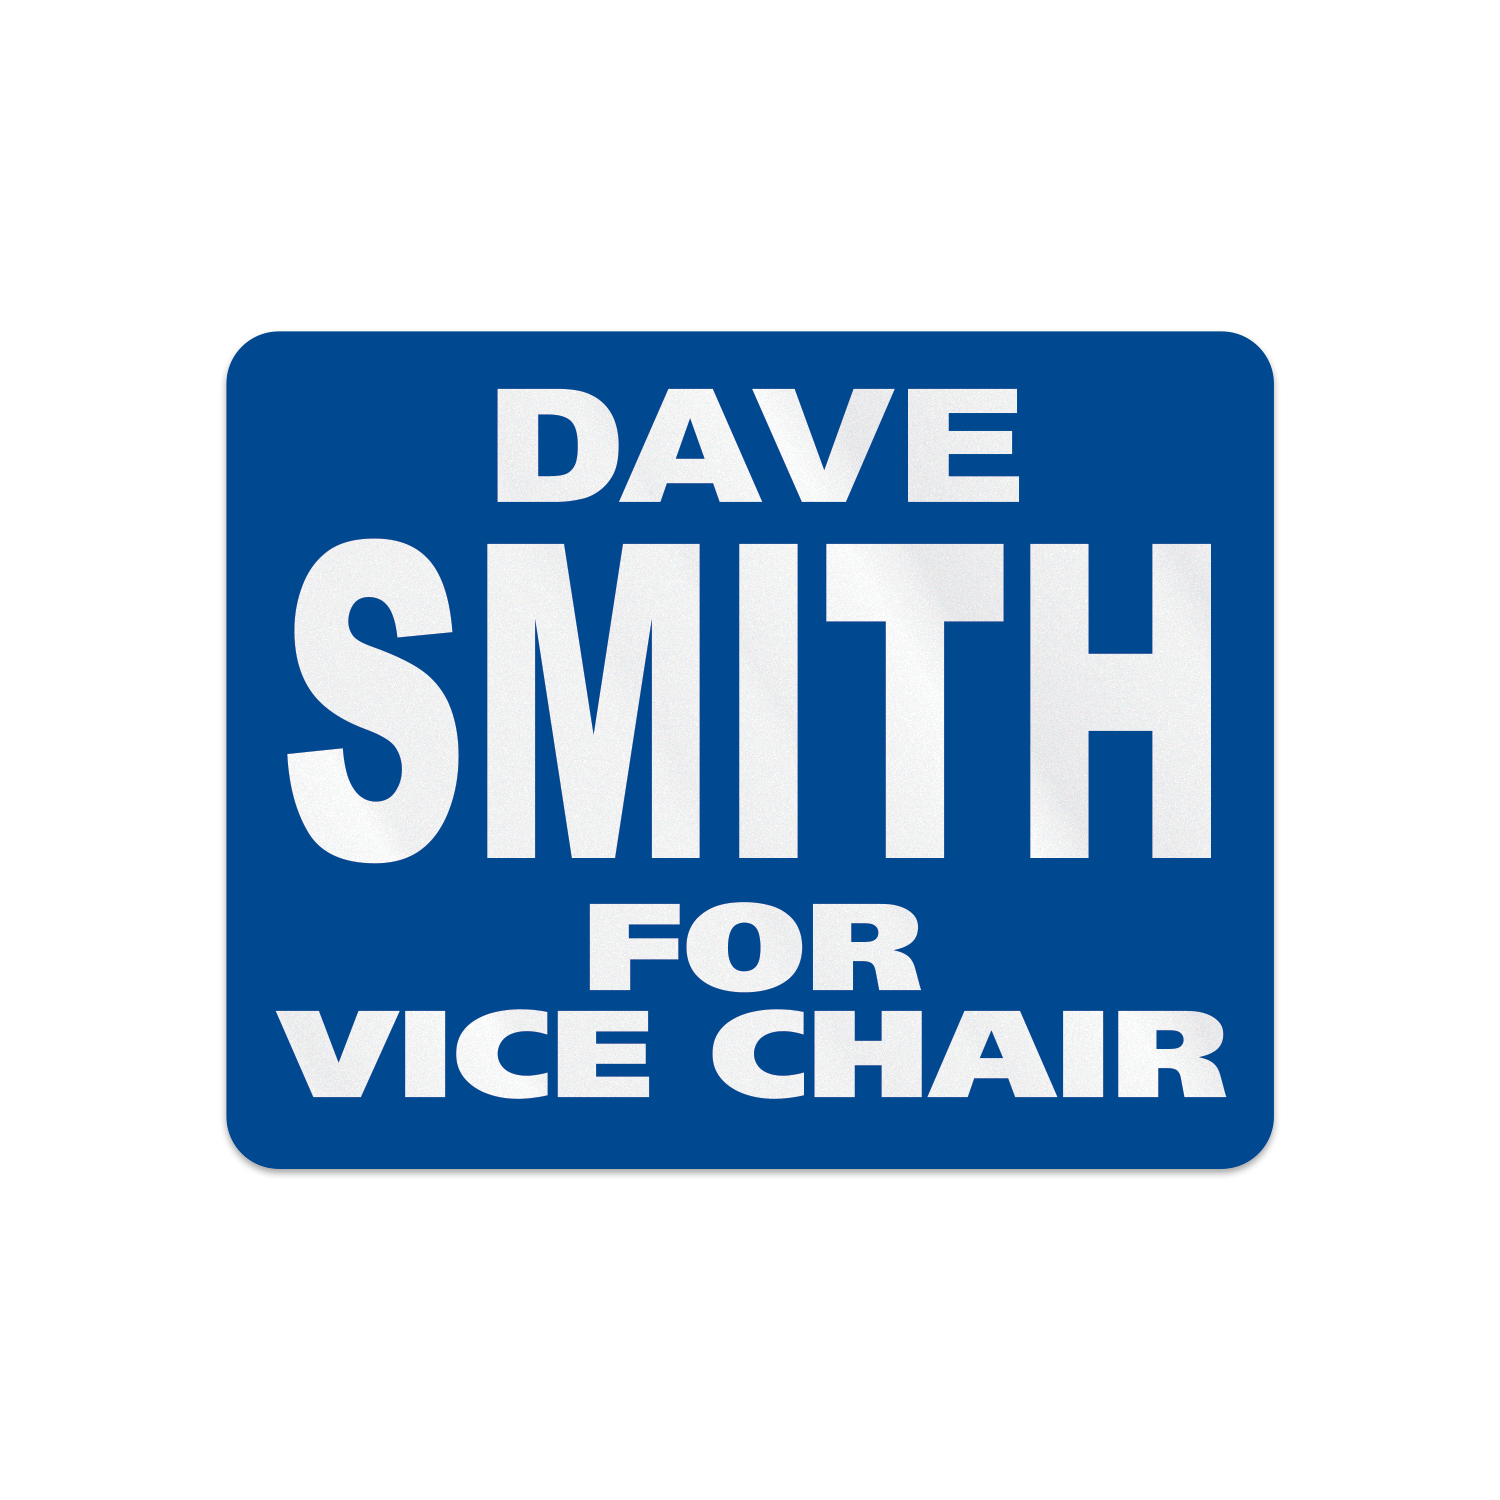 https://www.sswprinting.com/images/products_gallery_images/191007_Dave-Smith-for-Vice-Chair_hi-res.png